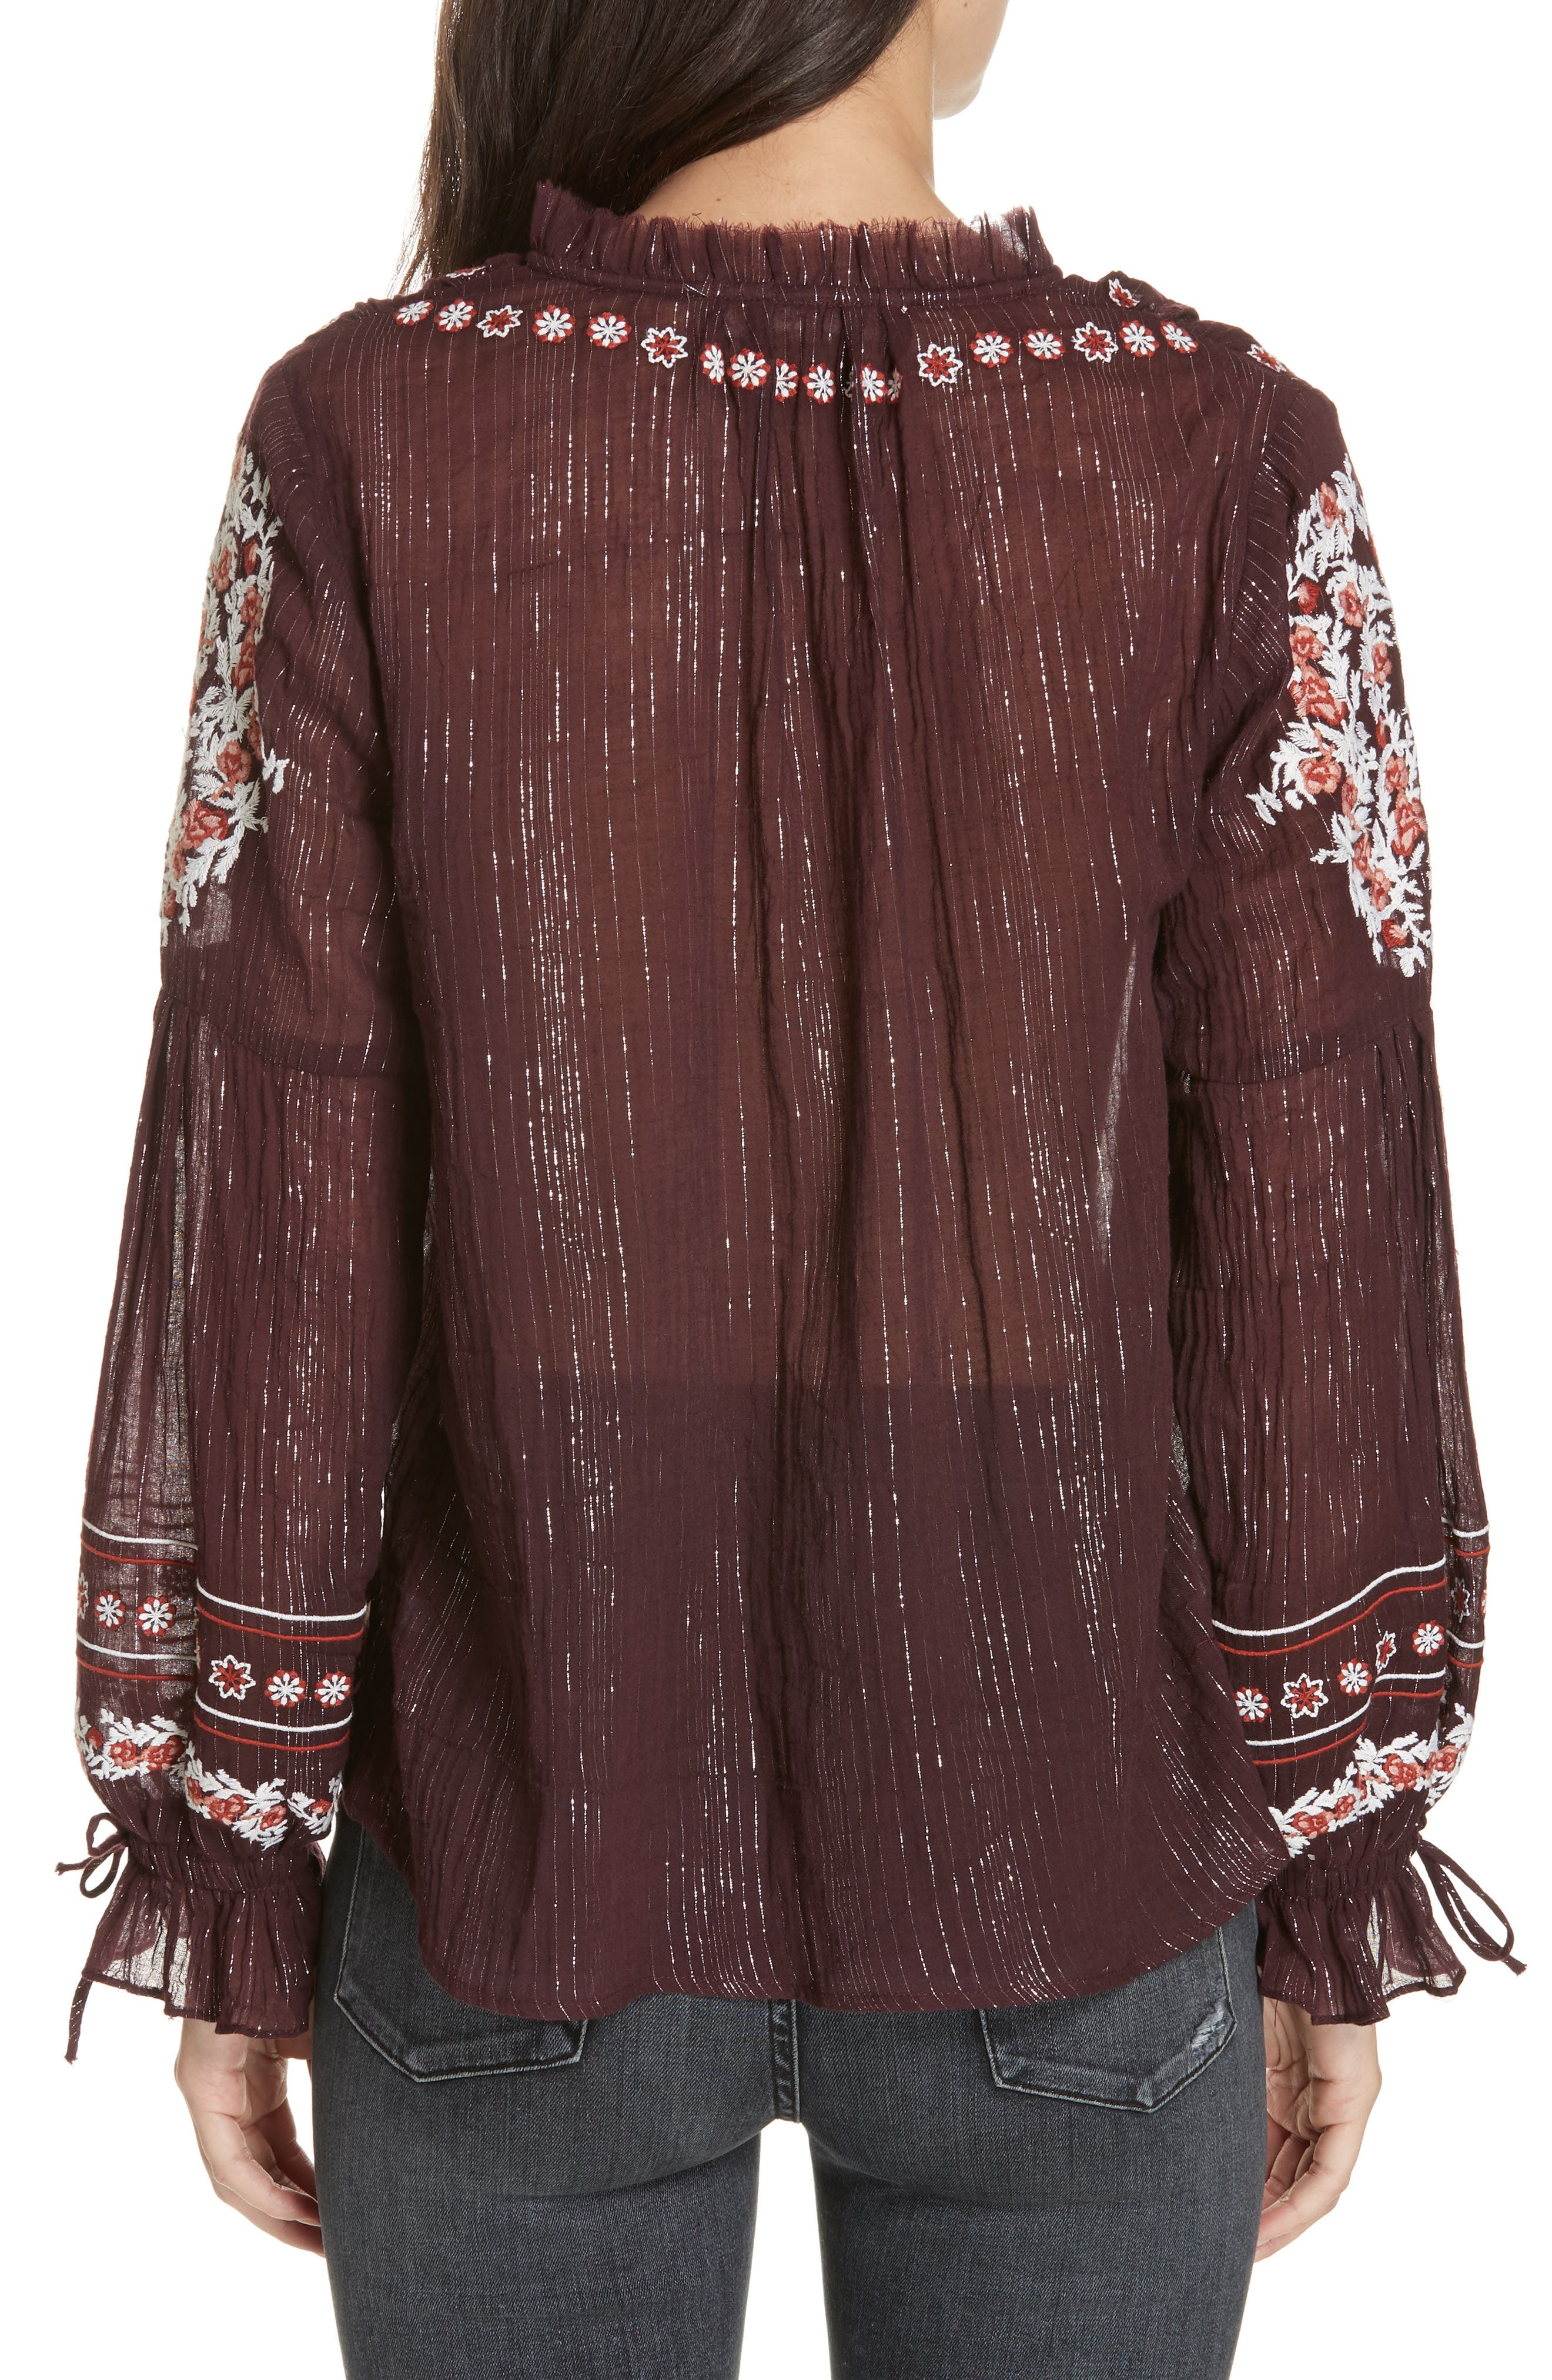 DOLAN,                             Lily Embroidered Peasant Top,                             Alternate thumbnail 2, color,                             MULBERRY